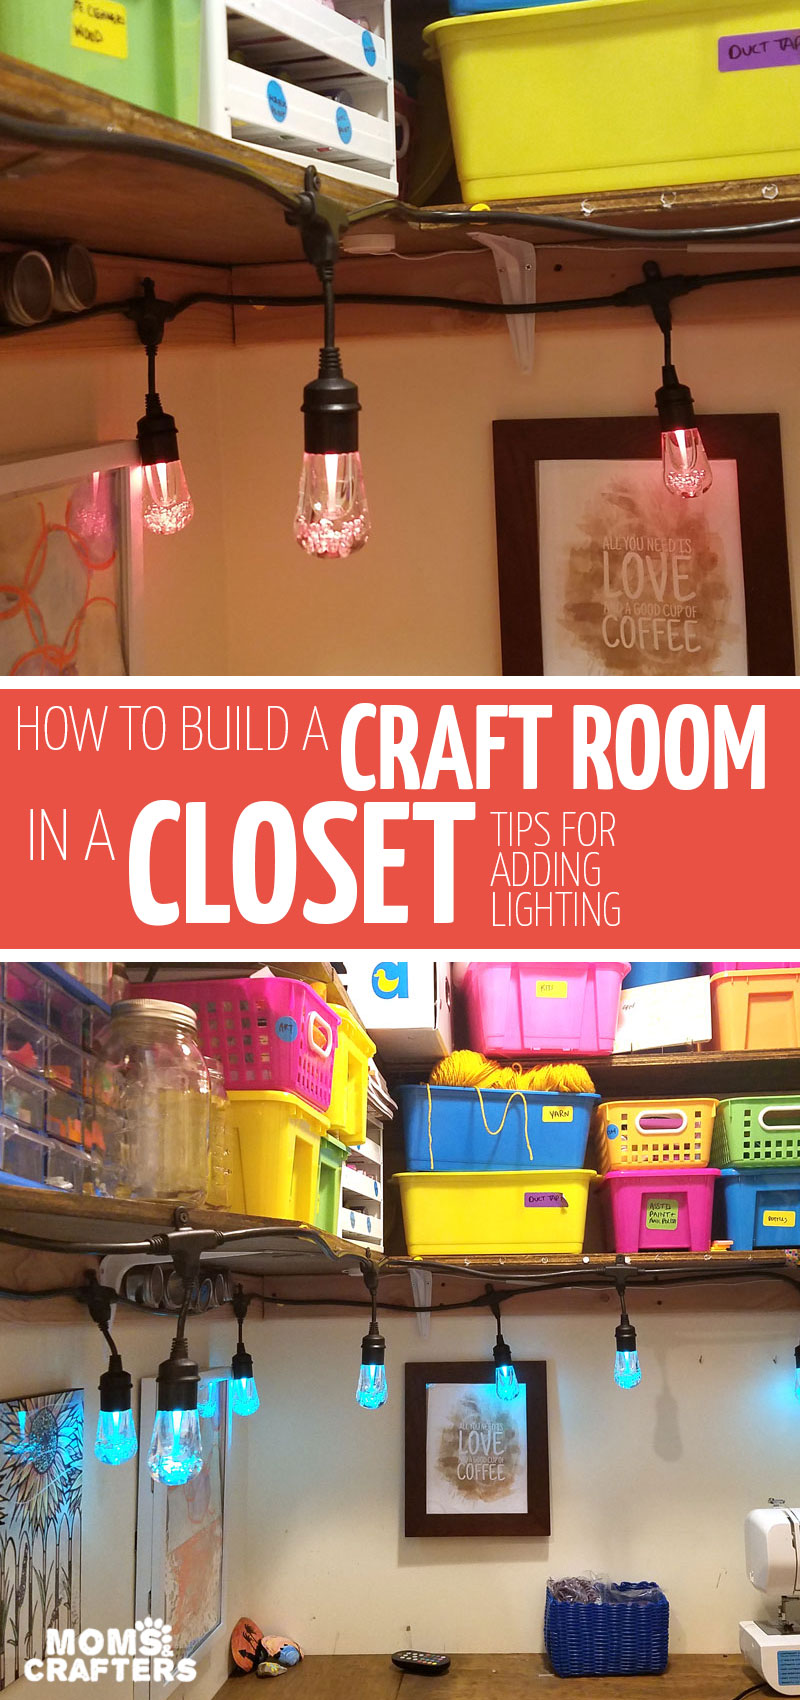 Click if you think you have no space for a craft room! Learn how I made the coolest craft room in a closet with this amazing craft room reveal and some super craft room hacks #craftroom #homedecor #diy